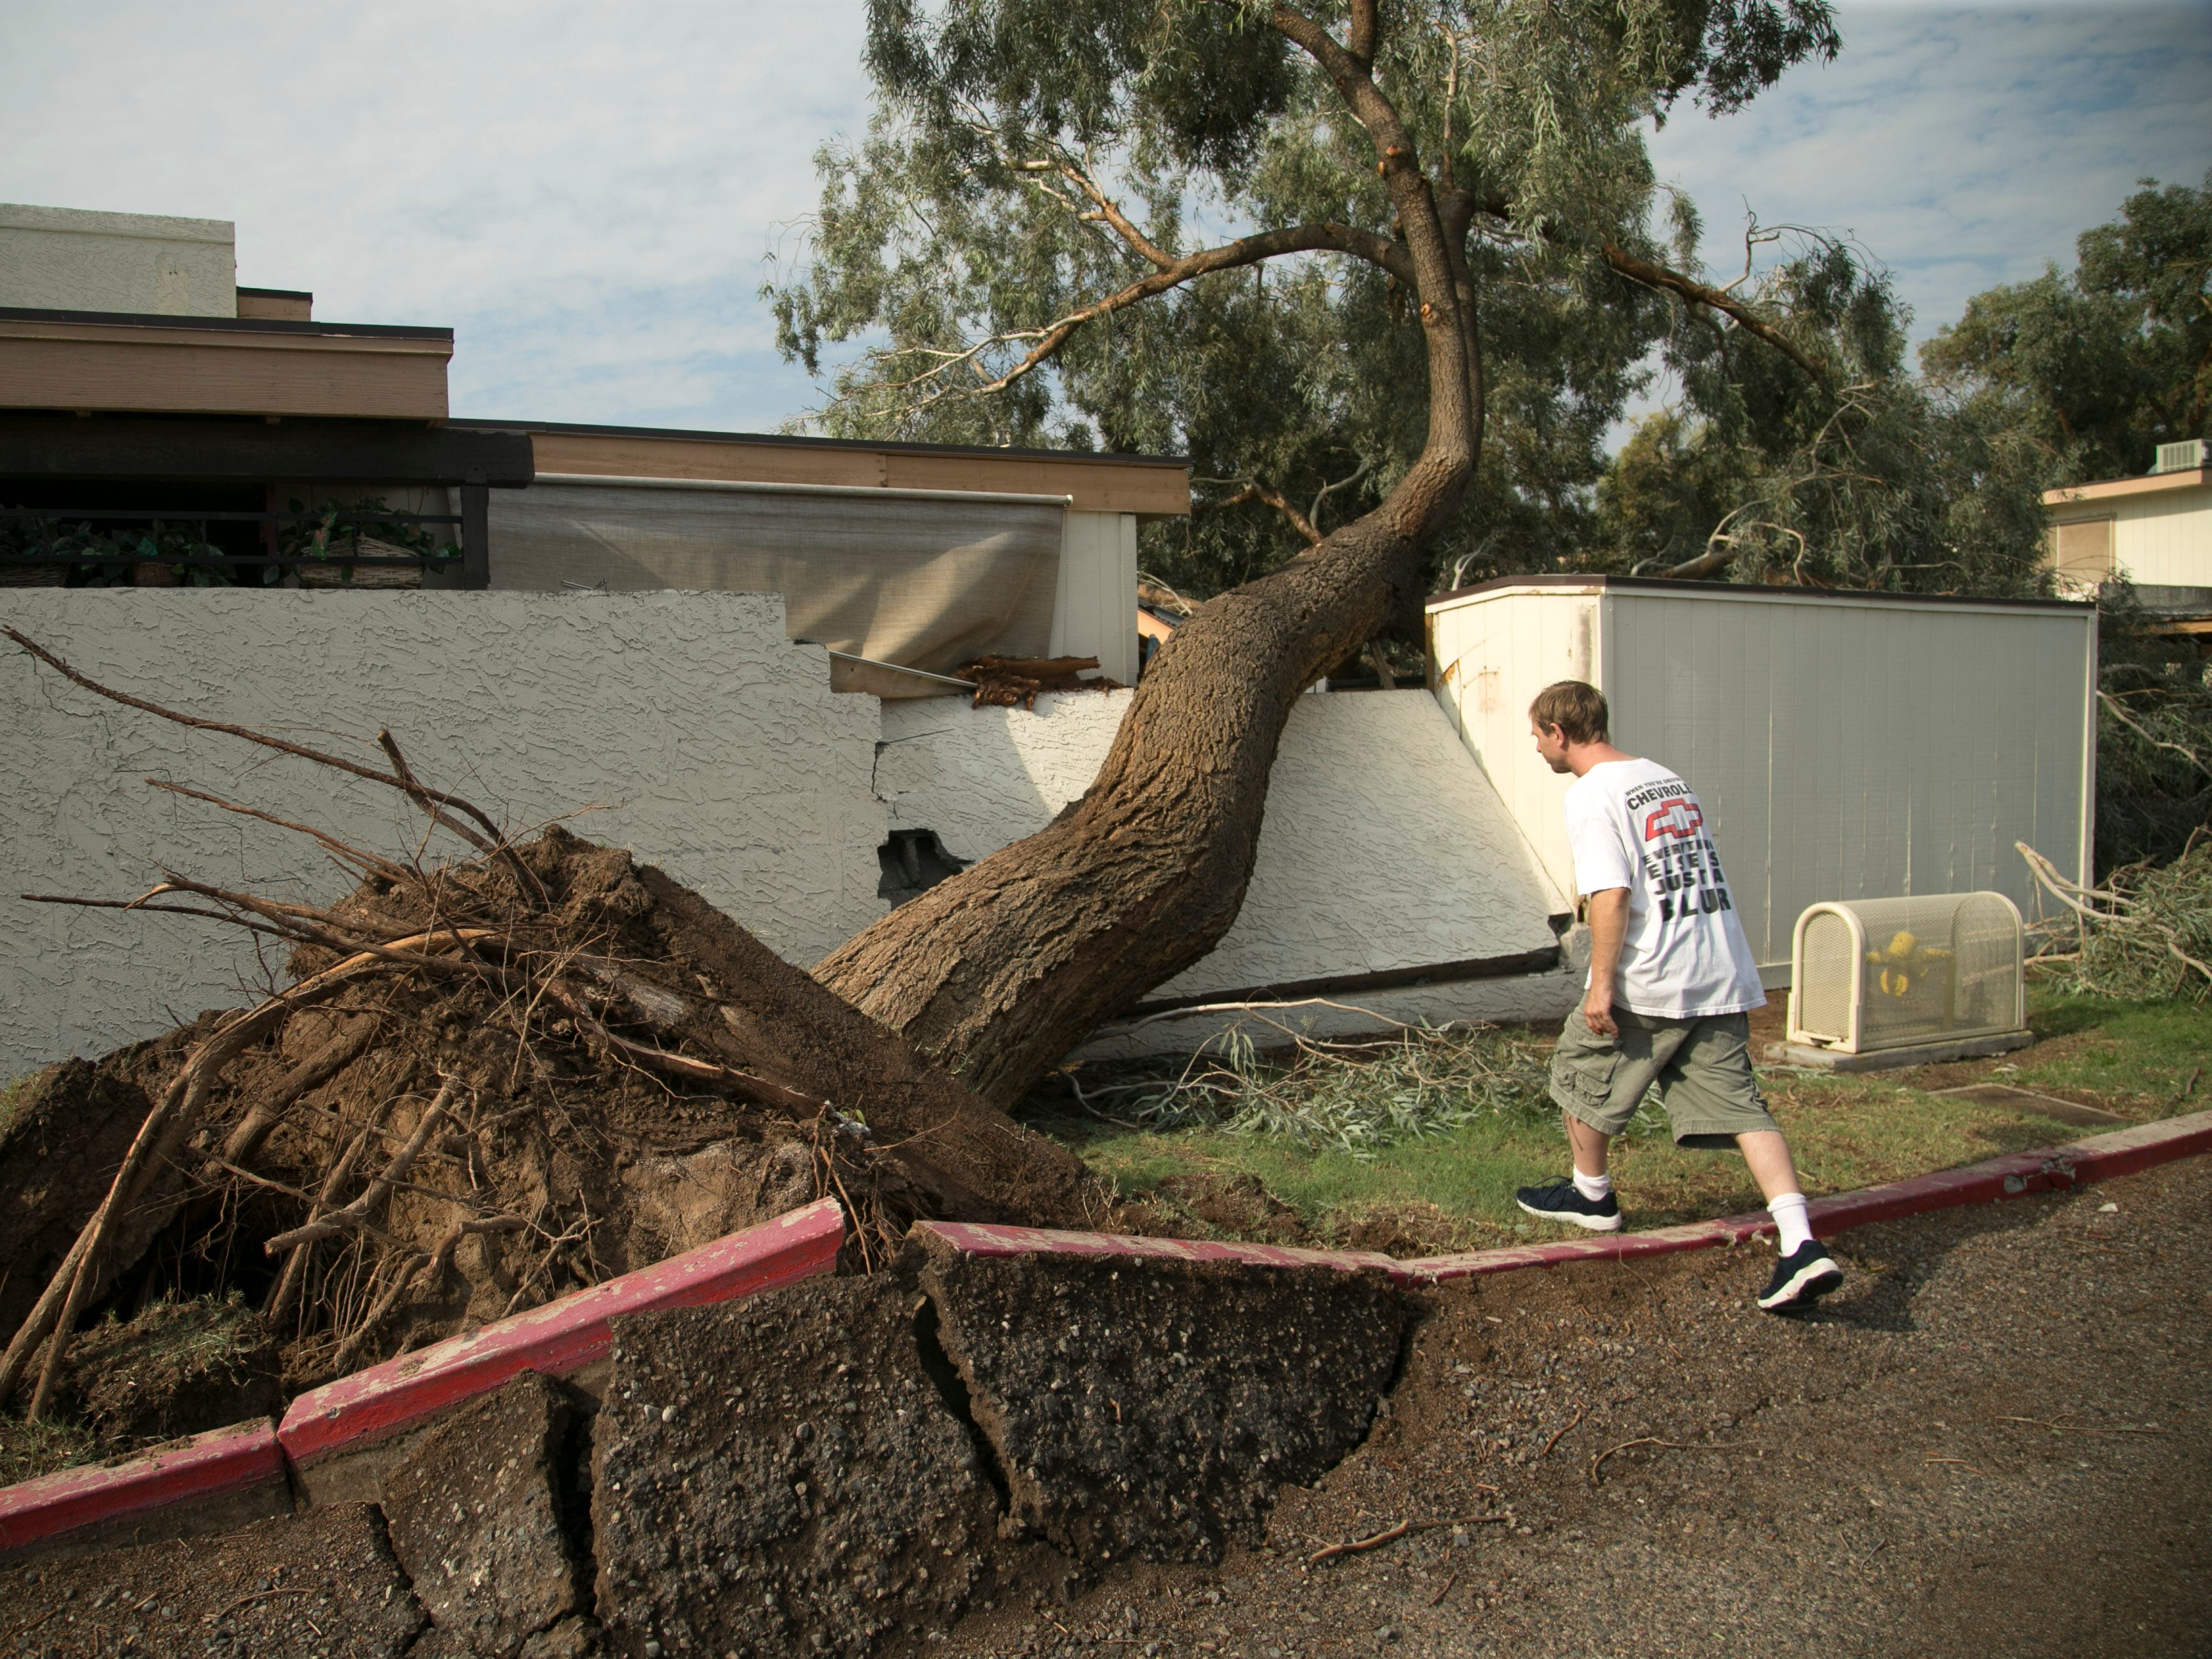 Josh Boyd surveys a large tree that came down just a few feet from his apartment, crushing his backyard wall and two of his family's vehicles near 31st and Northern avenues in Phoenix on July 31, 2018. Heavy winds and rain brought multiple trees down in the apartment complex the night before.